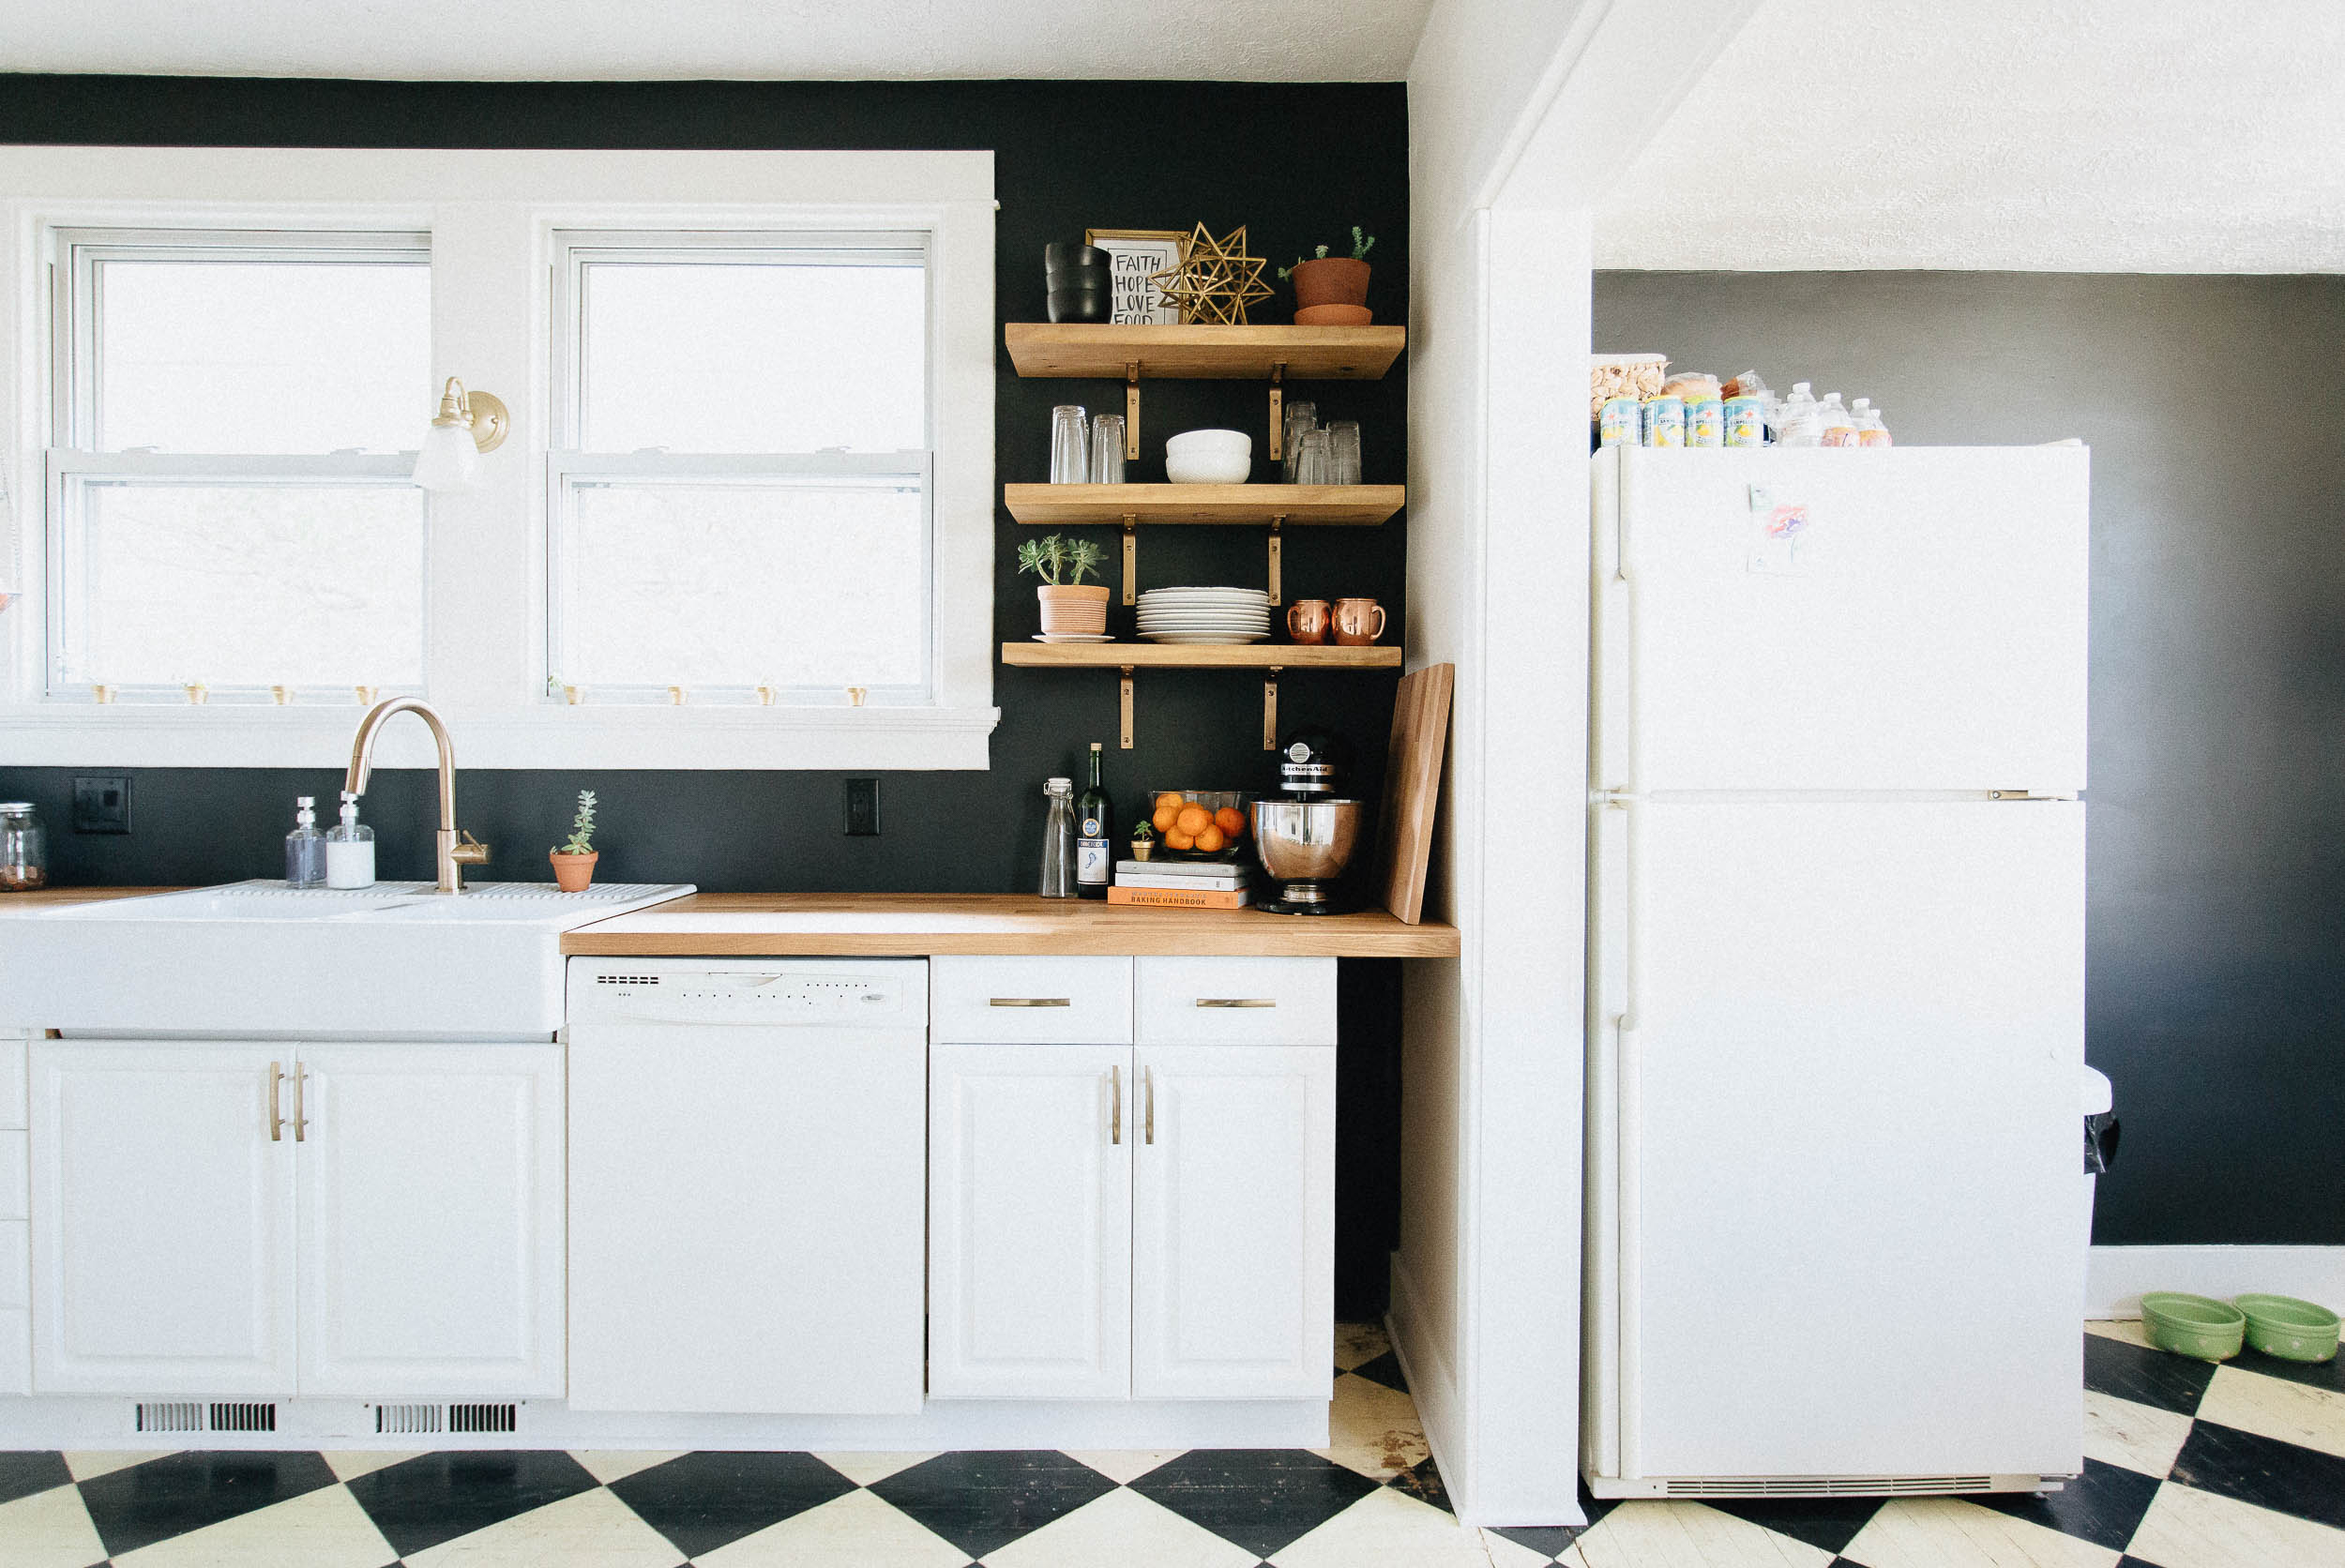 DIY Black and White Kitchen with Butcher Block and Open Shelves